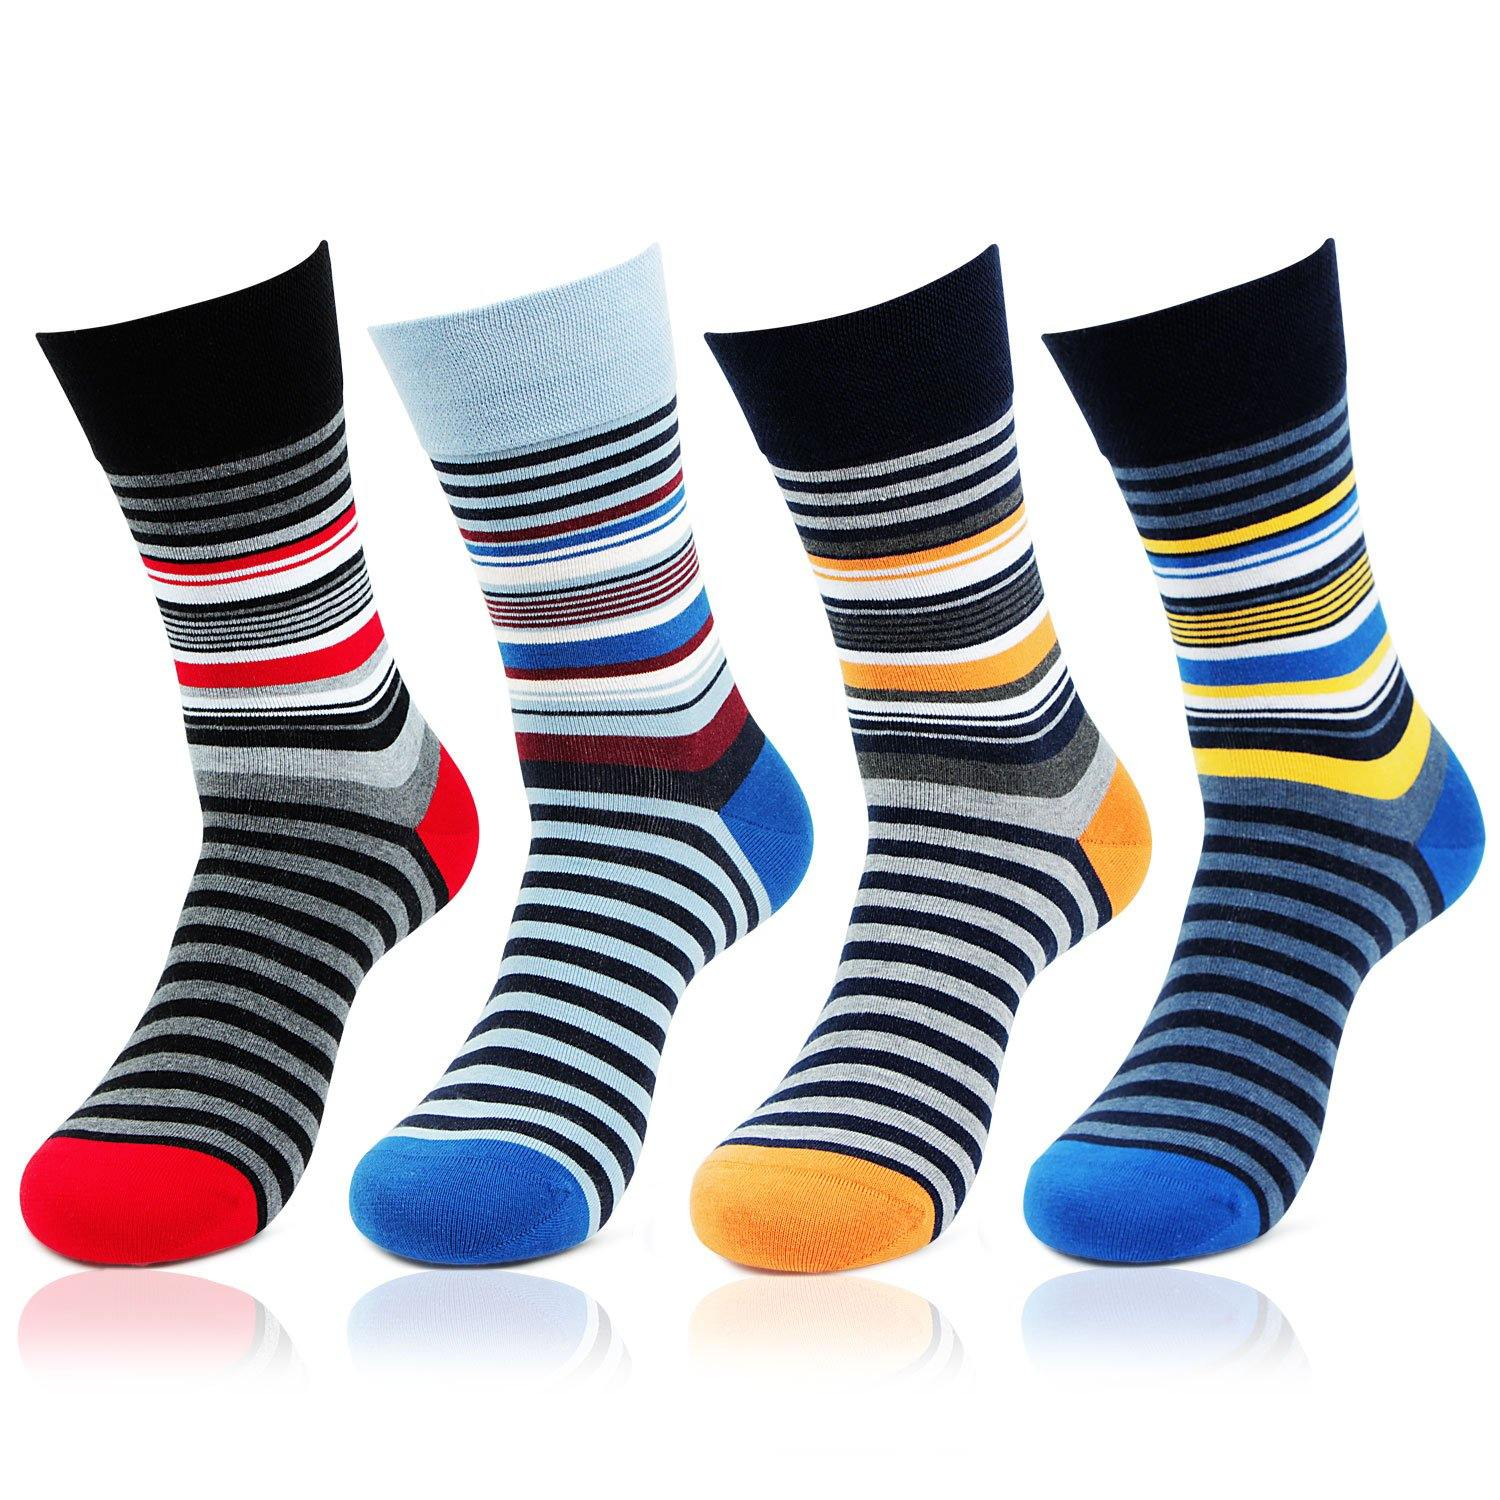 Men's Designer Multicolored Striped Pattern Bold Socks - Pack of 4